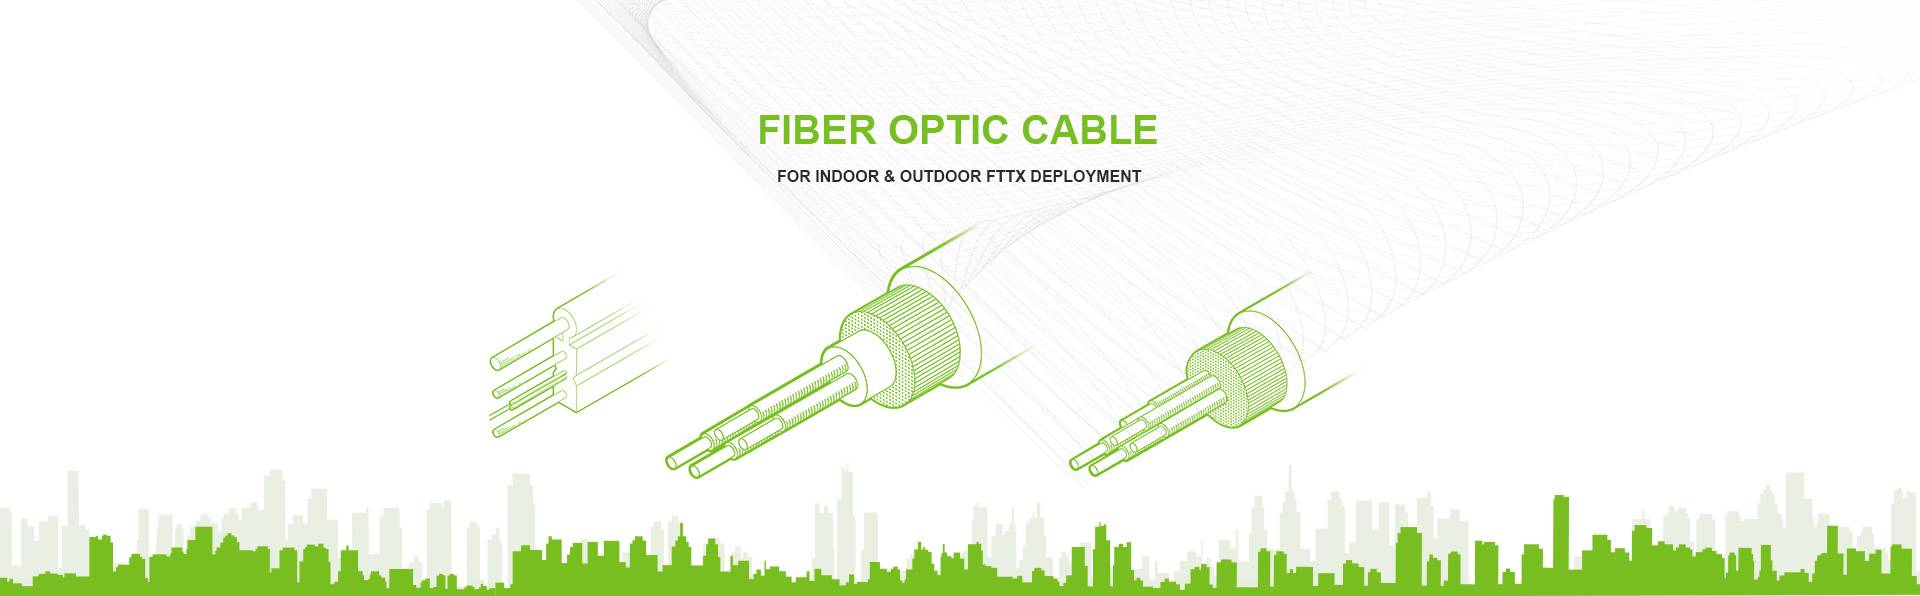 FTTH fiber optic cable